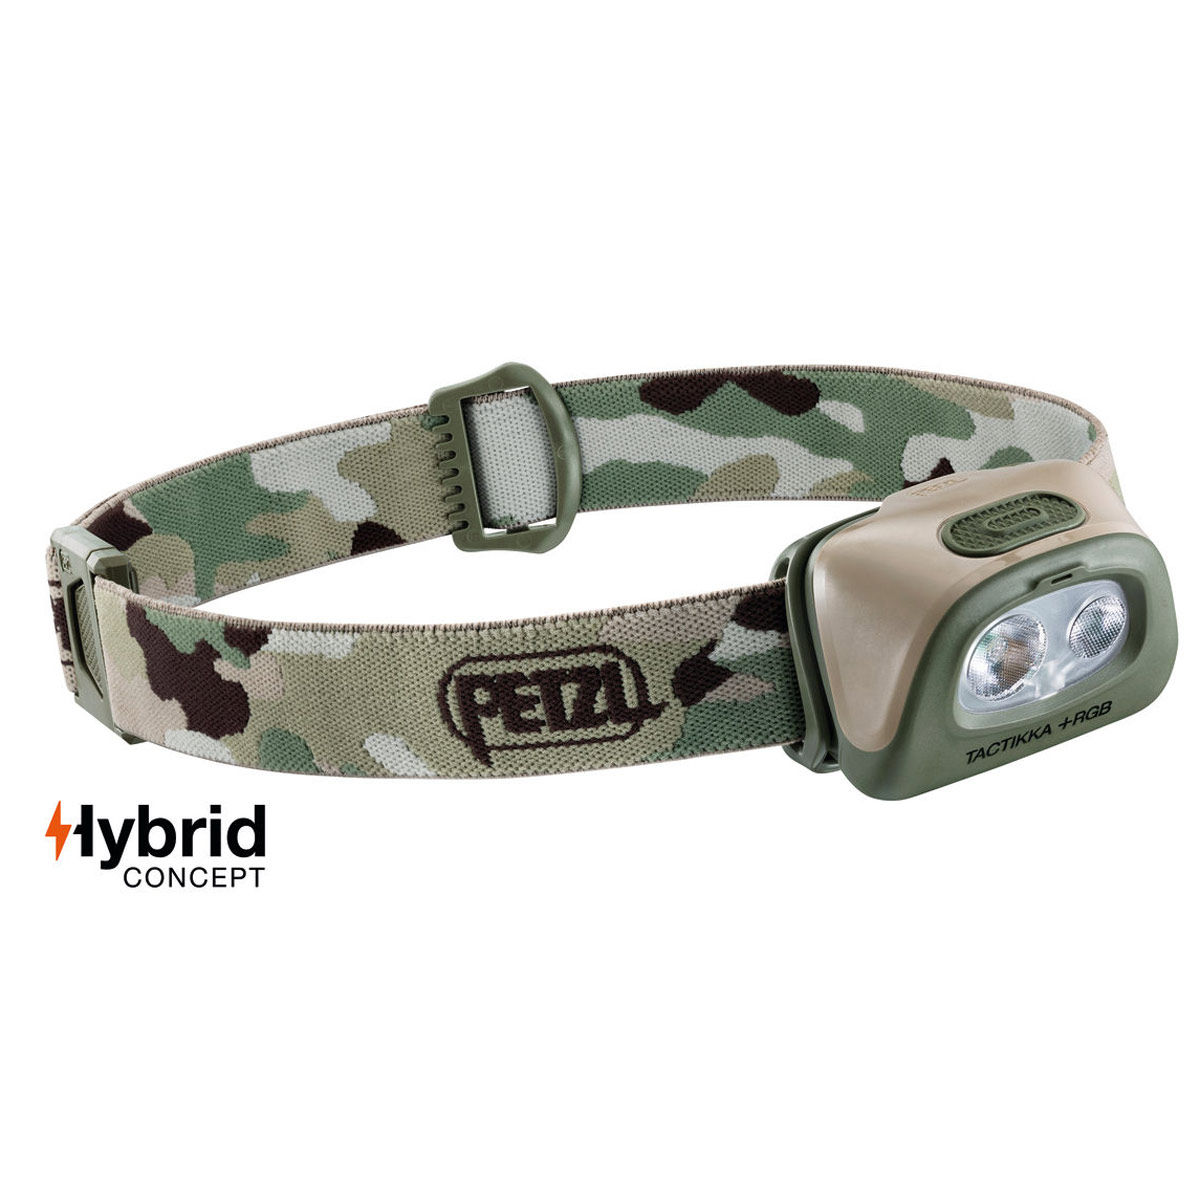 Petzl TACTIKKA Plus RGB Headtorch - Camo